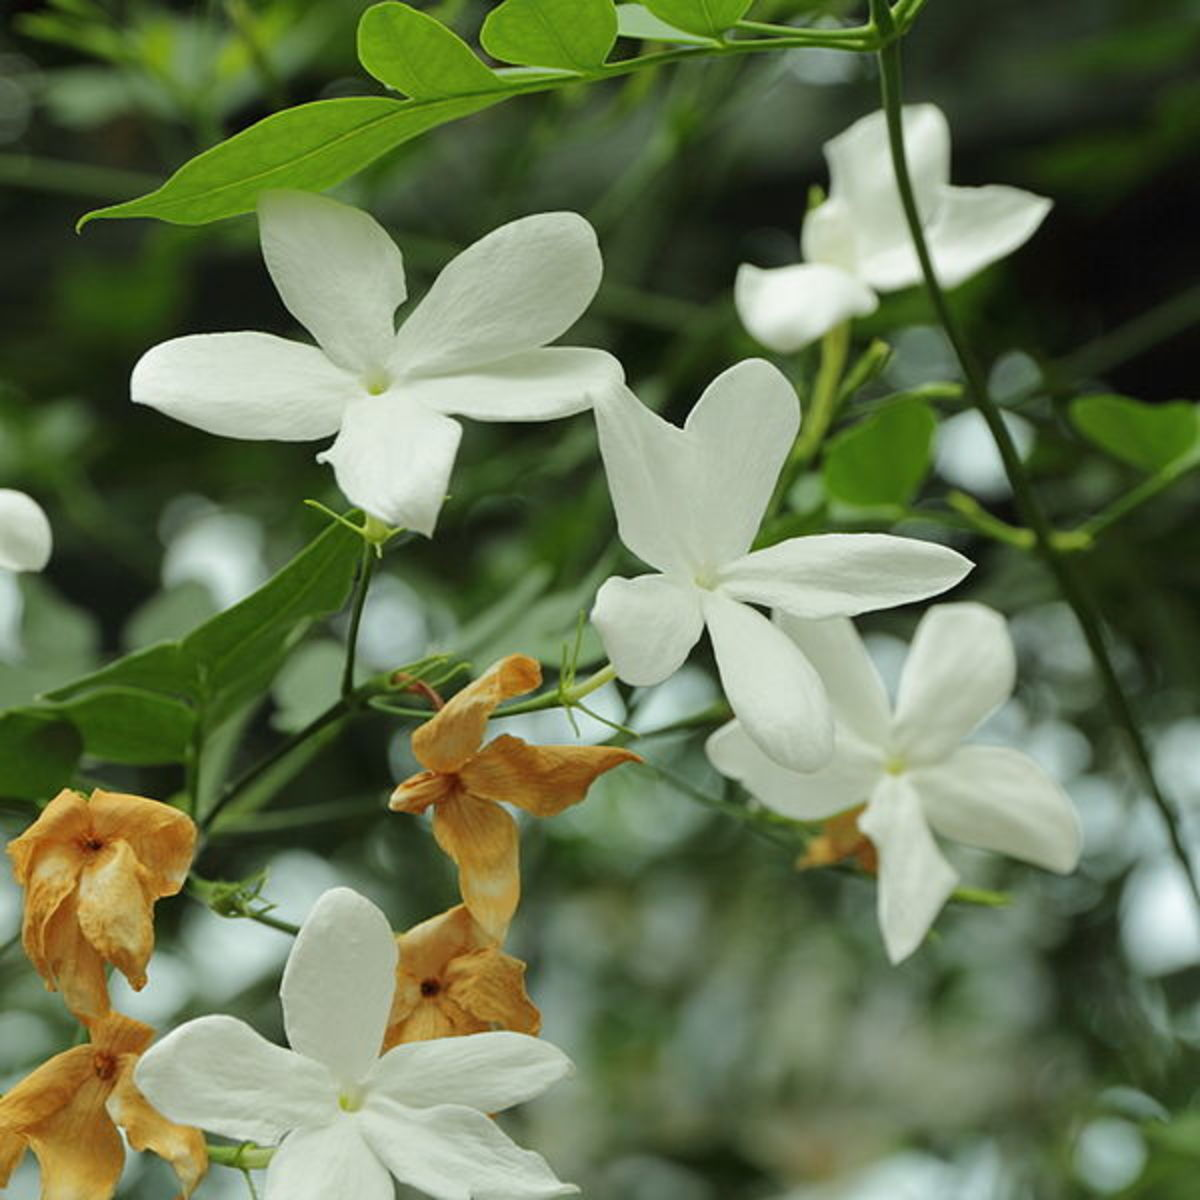 Jasmine flowers - Jasminum officinale